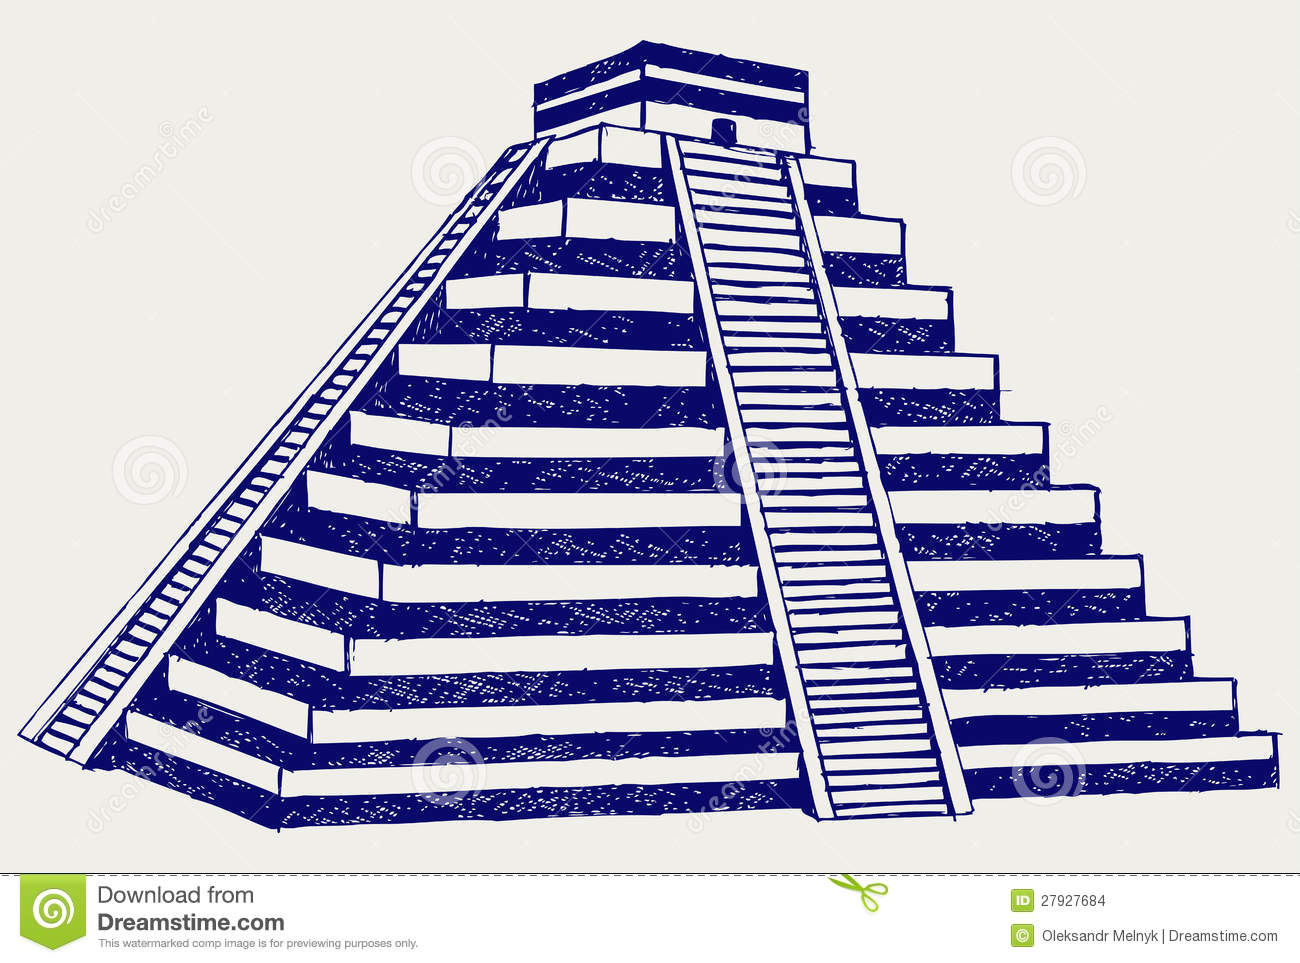 Simple Aztec Pyramid Drawing